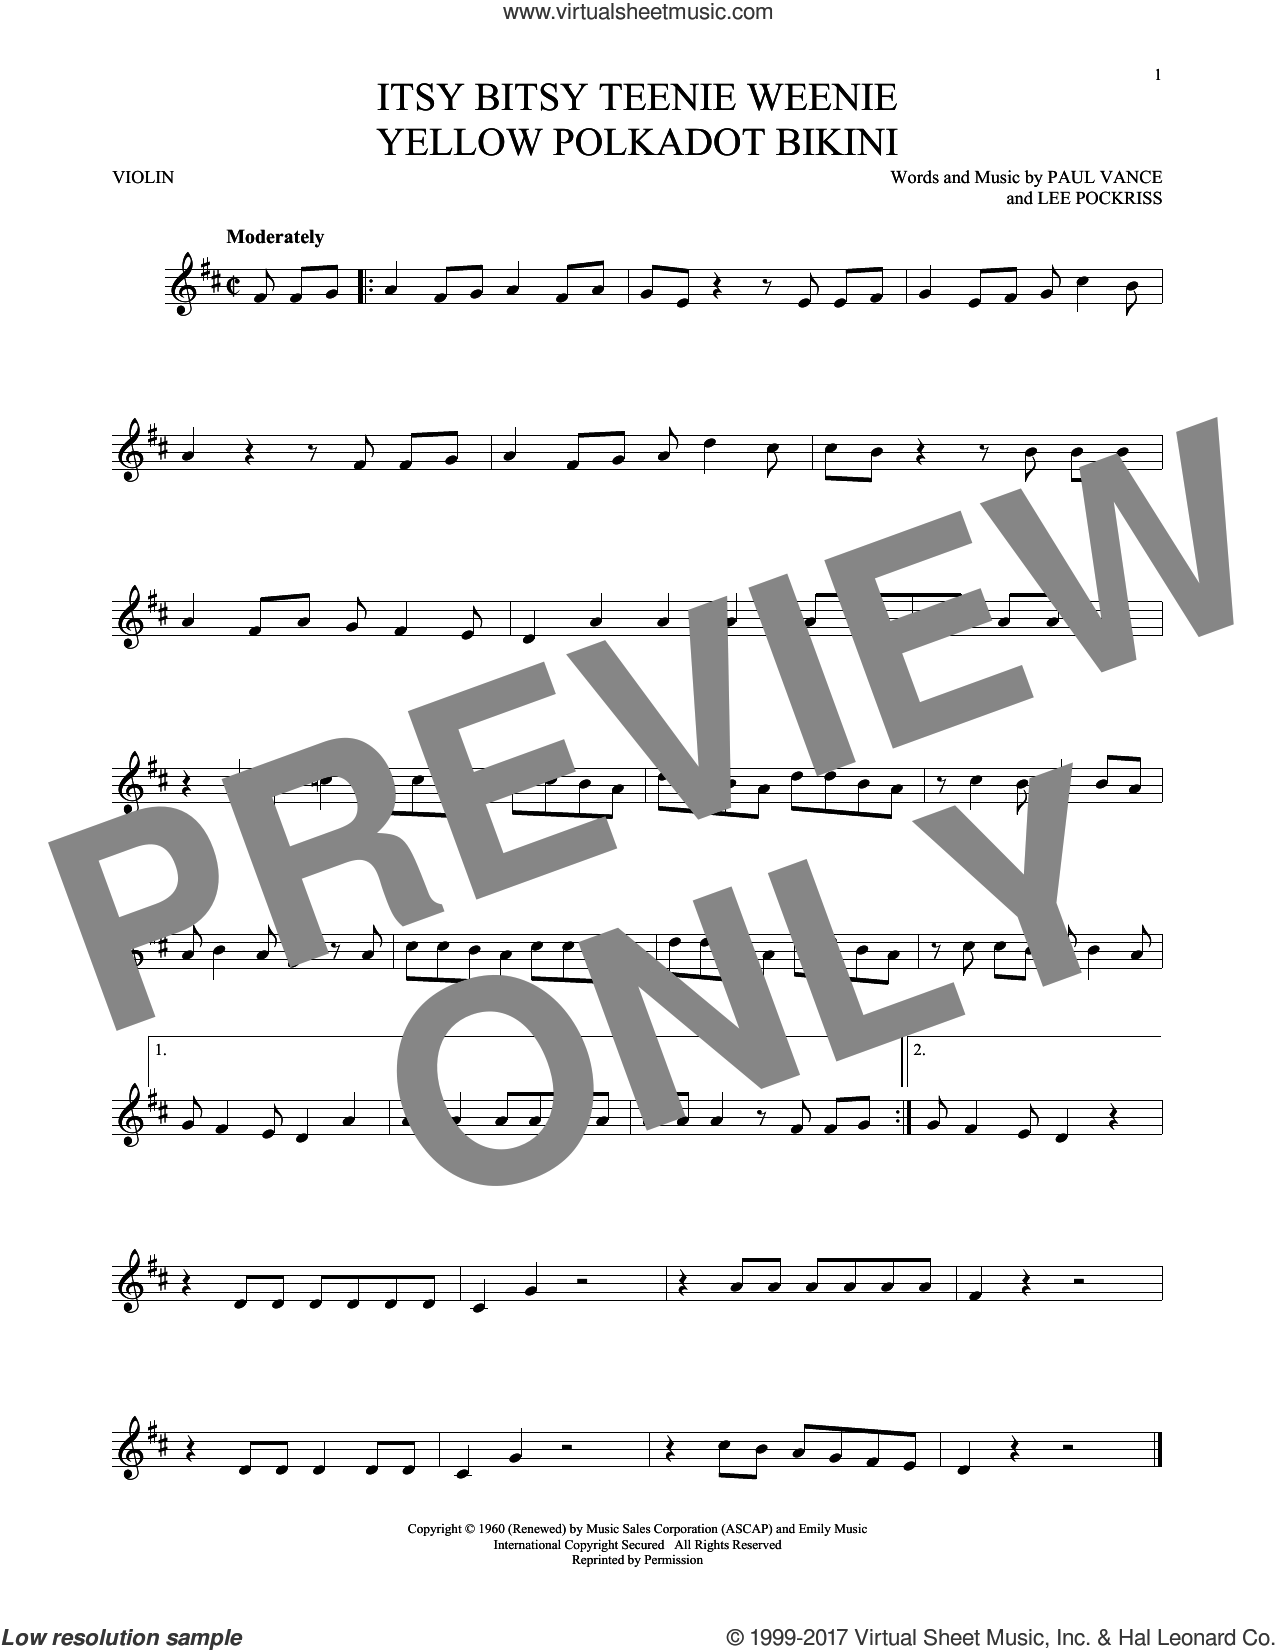 Itsy Bitsy Teenie Weenie Yellow Polkadot Bikini sheet music for violin solo by Brian Hyland, Lee Pockriss and Paul Vance, intermediate skill level